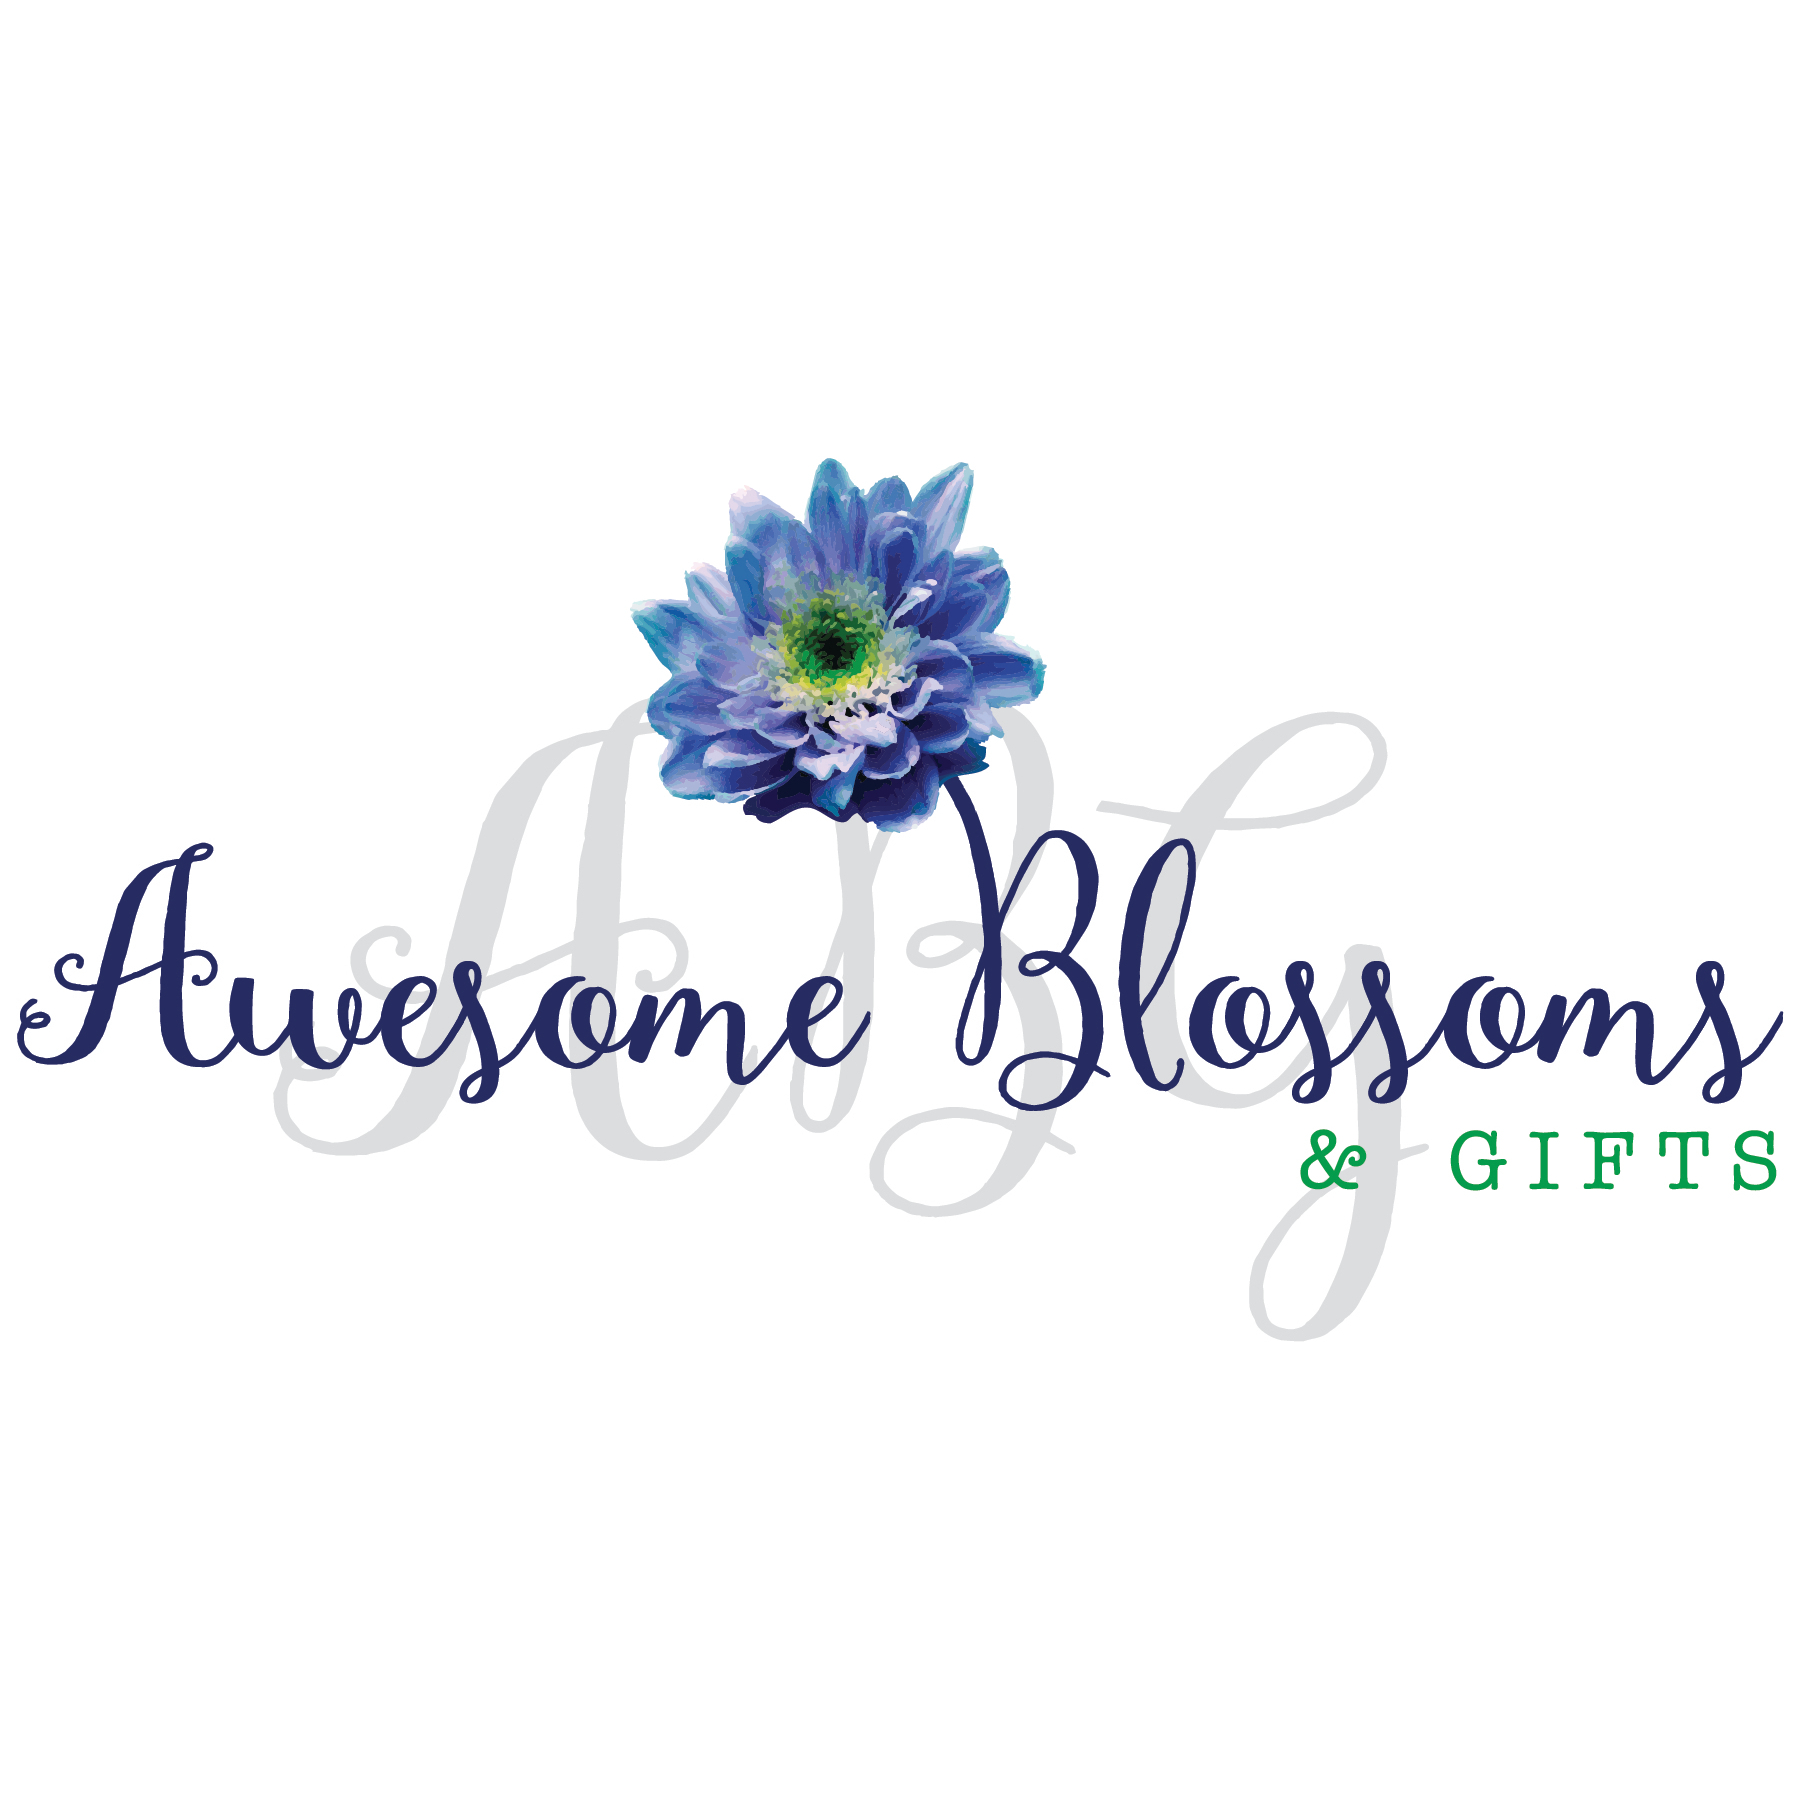 Awesome Blossoms and Gifts